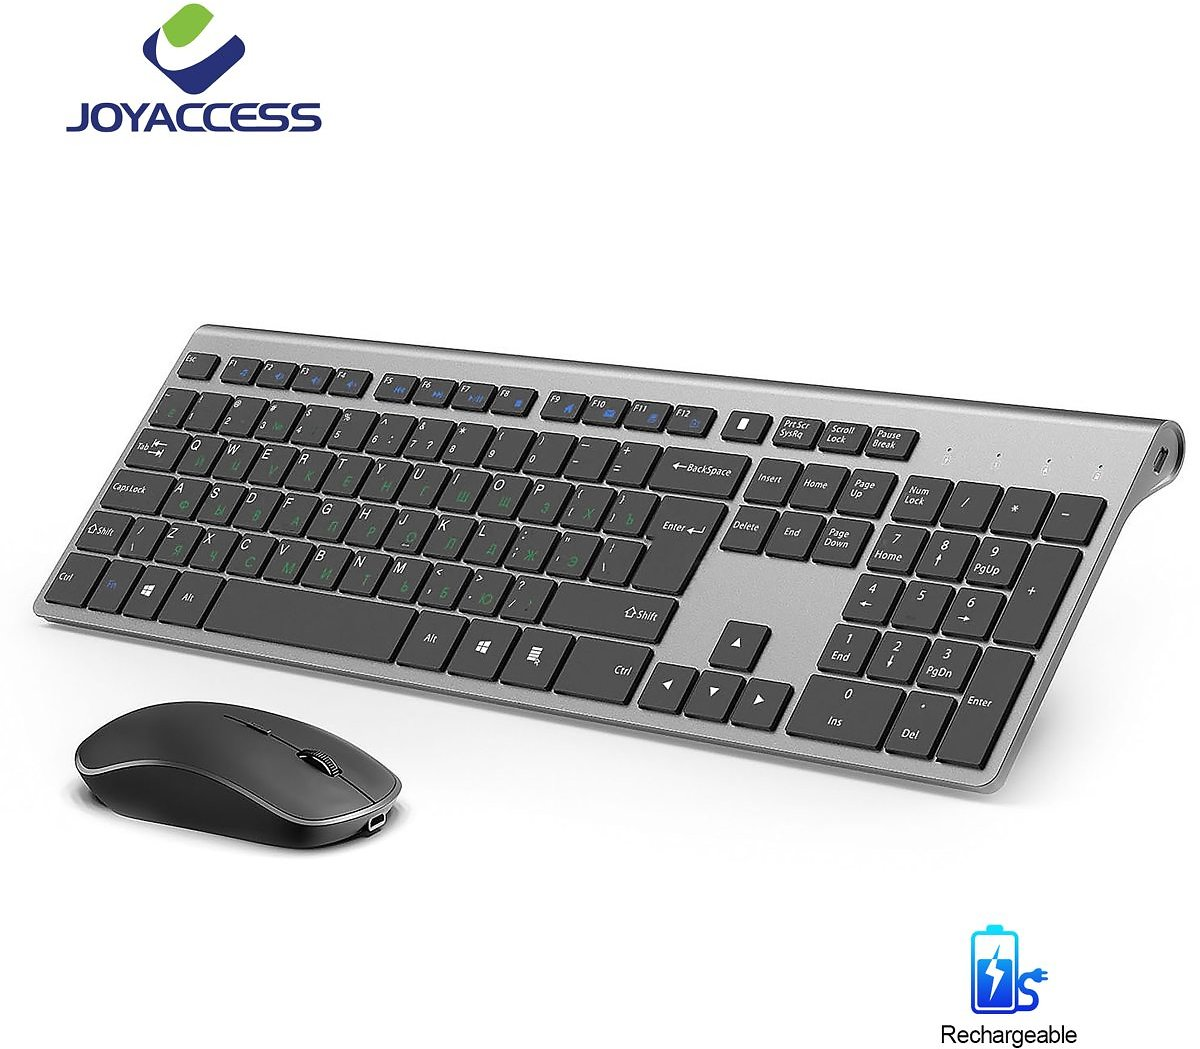 US $31.46 41% OFF|Russian Wireless Standard 106 Keys Keyboard Mouse Set Rechargeable Keyboard And Mouse Silent Mouse Slim Ergono